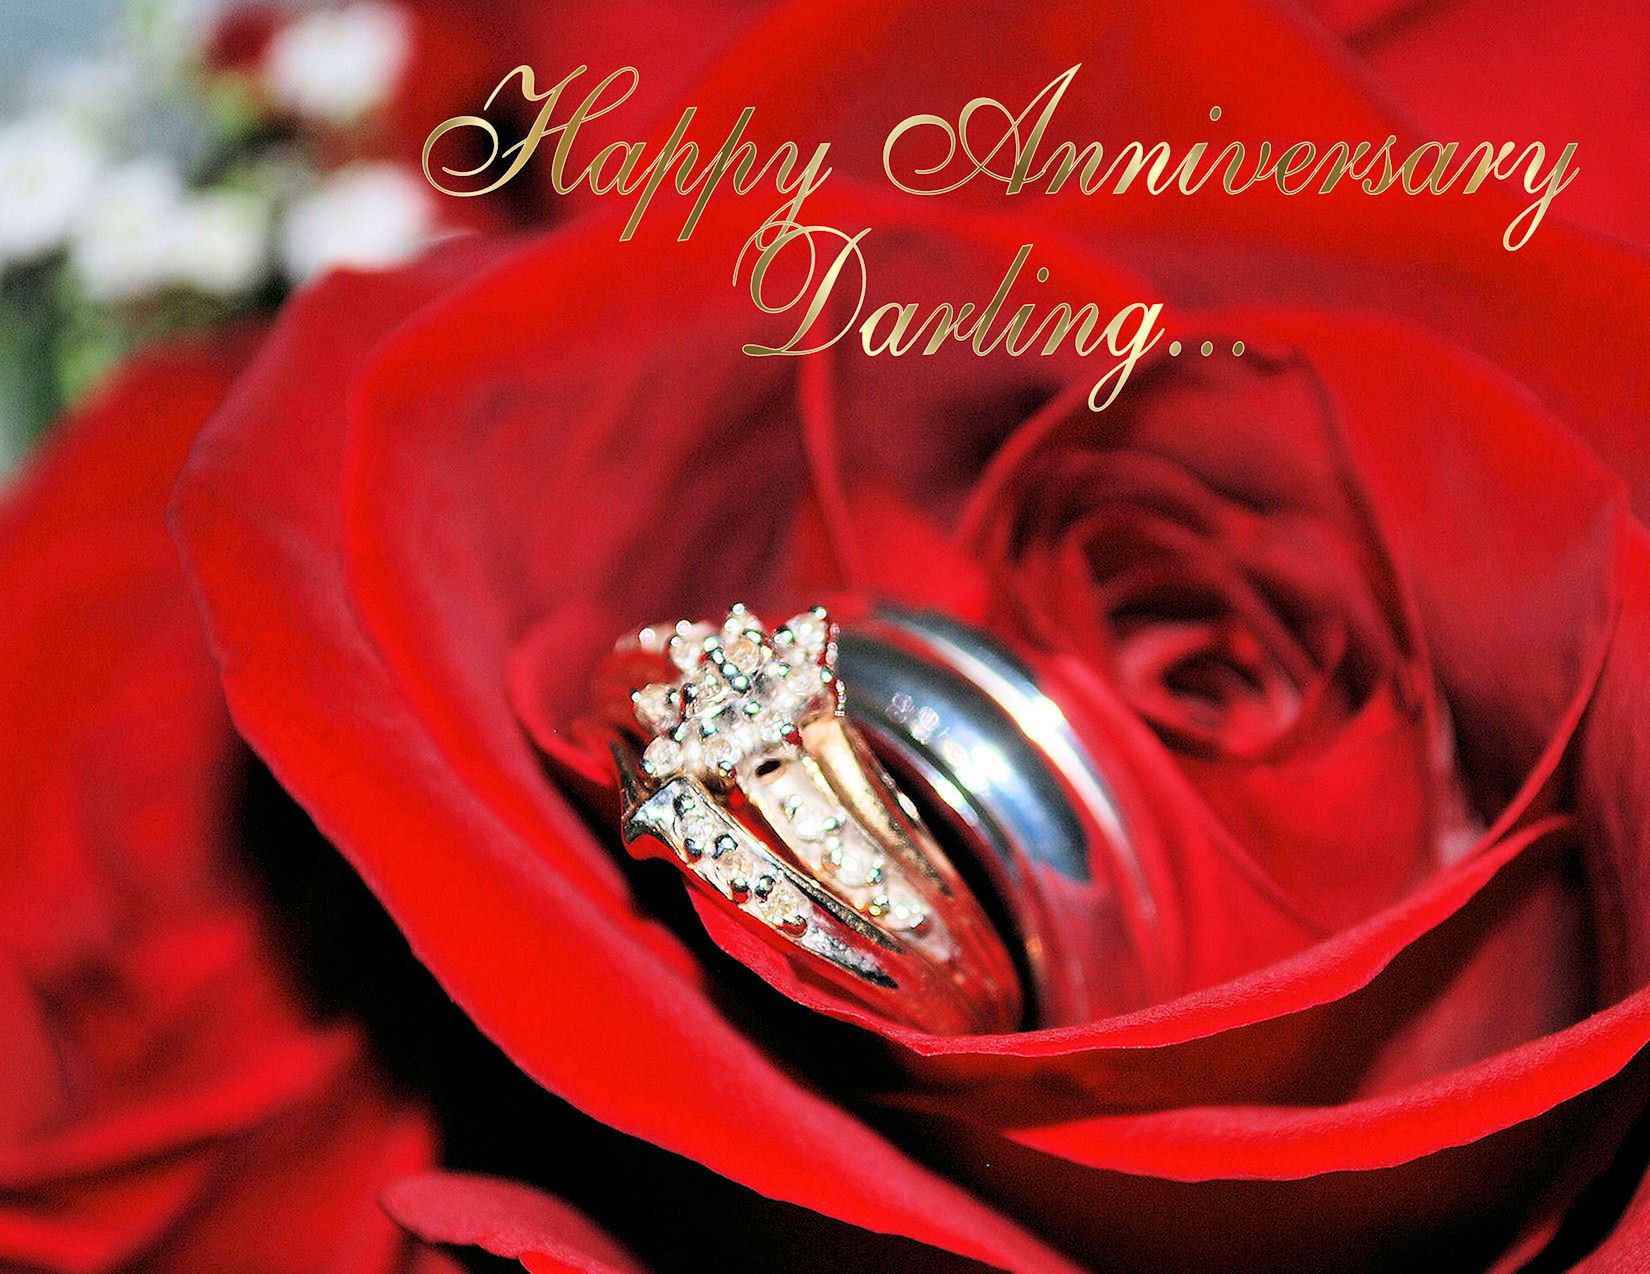 Happy Anniversary Darling